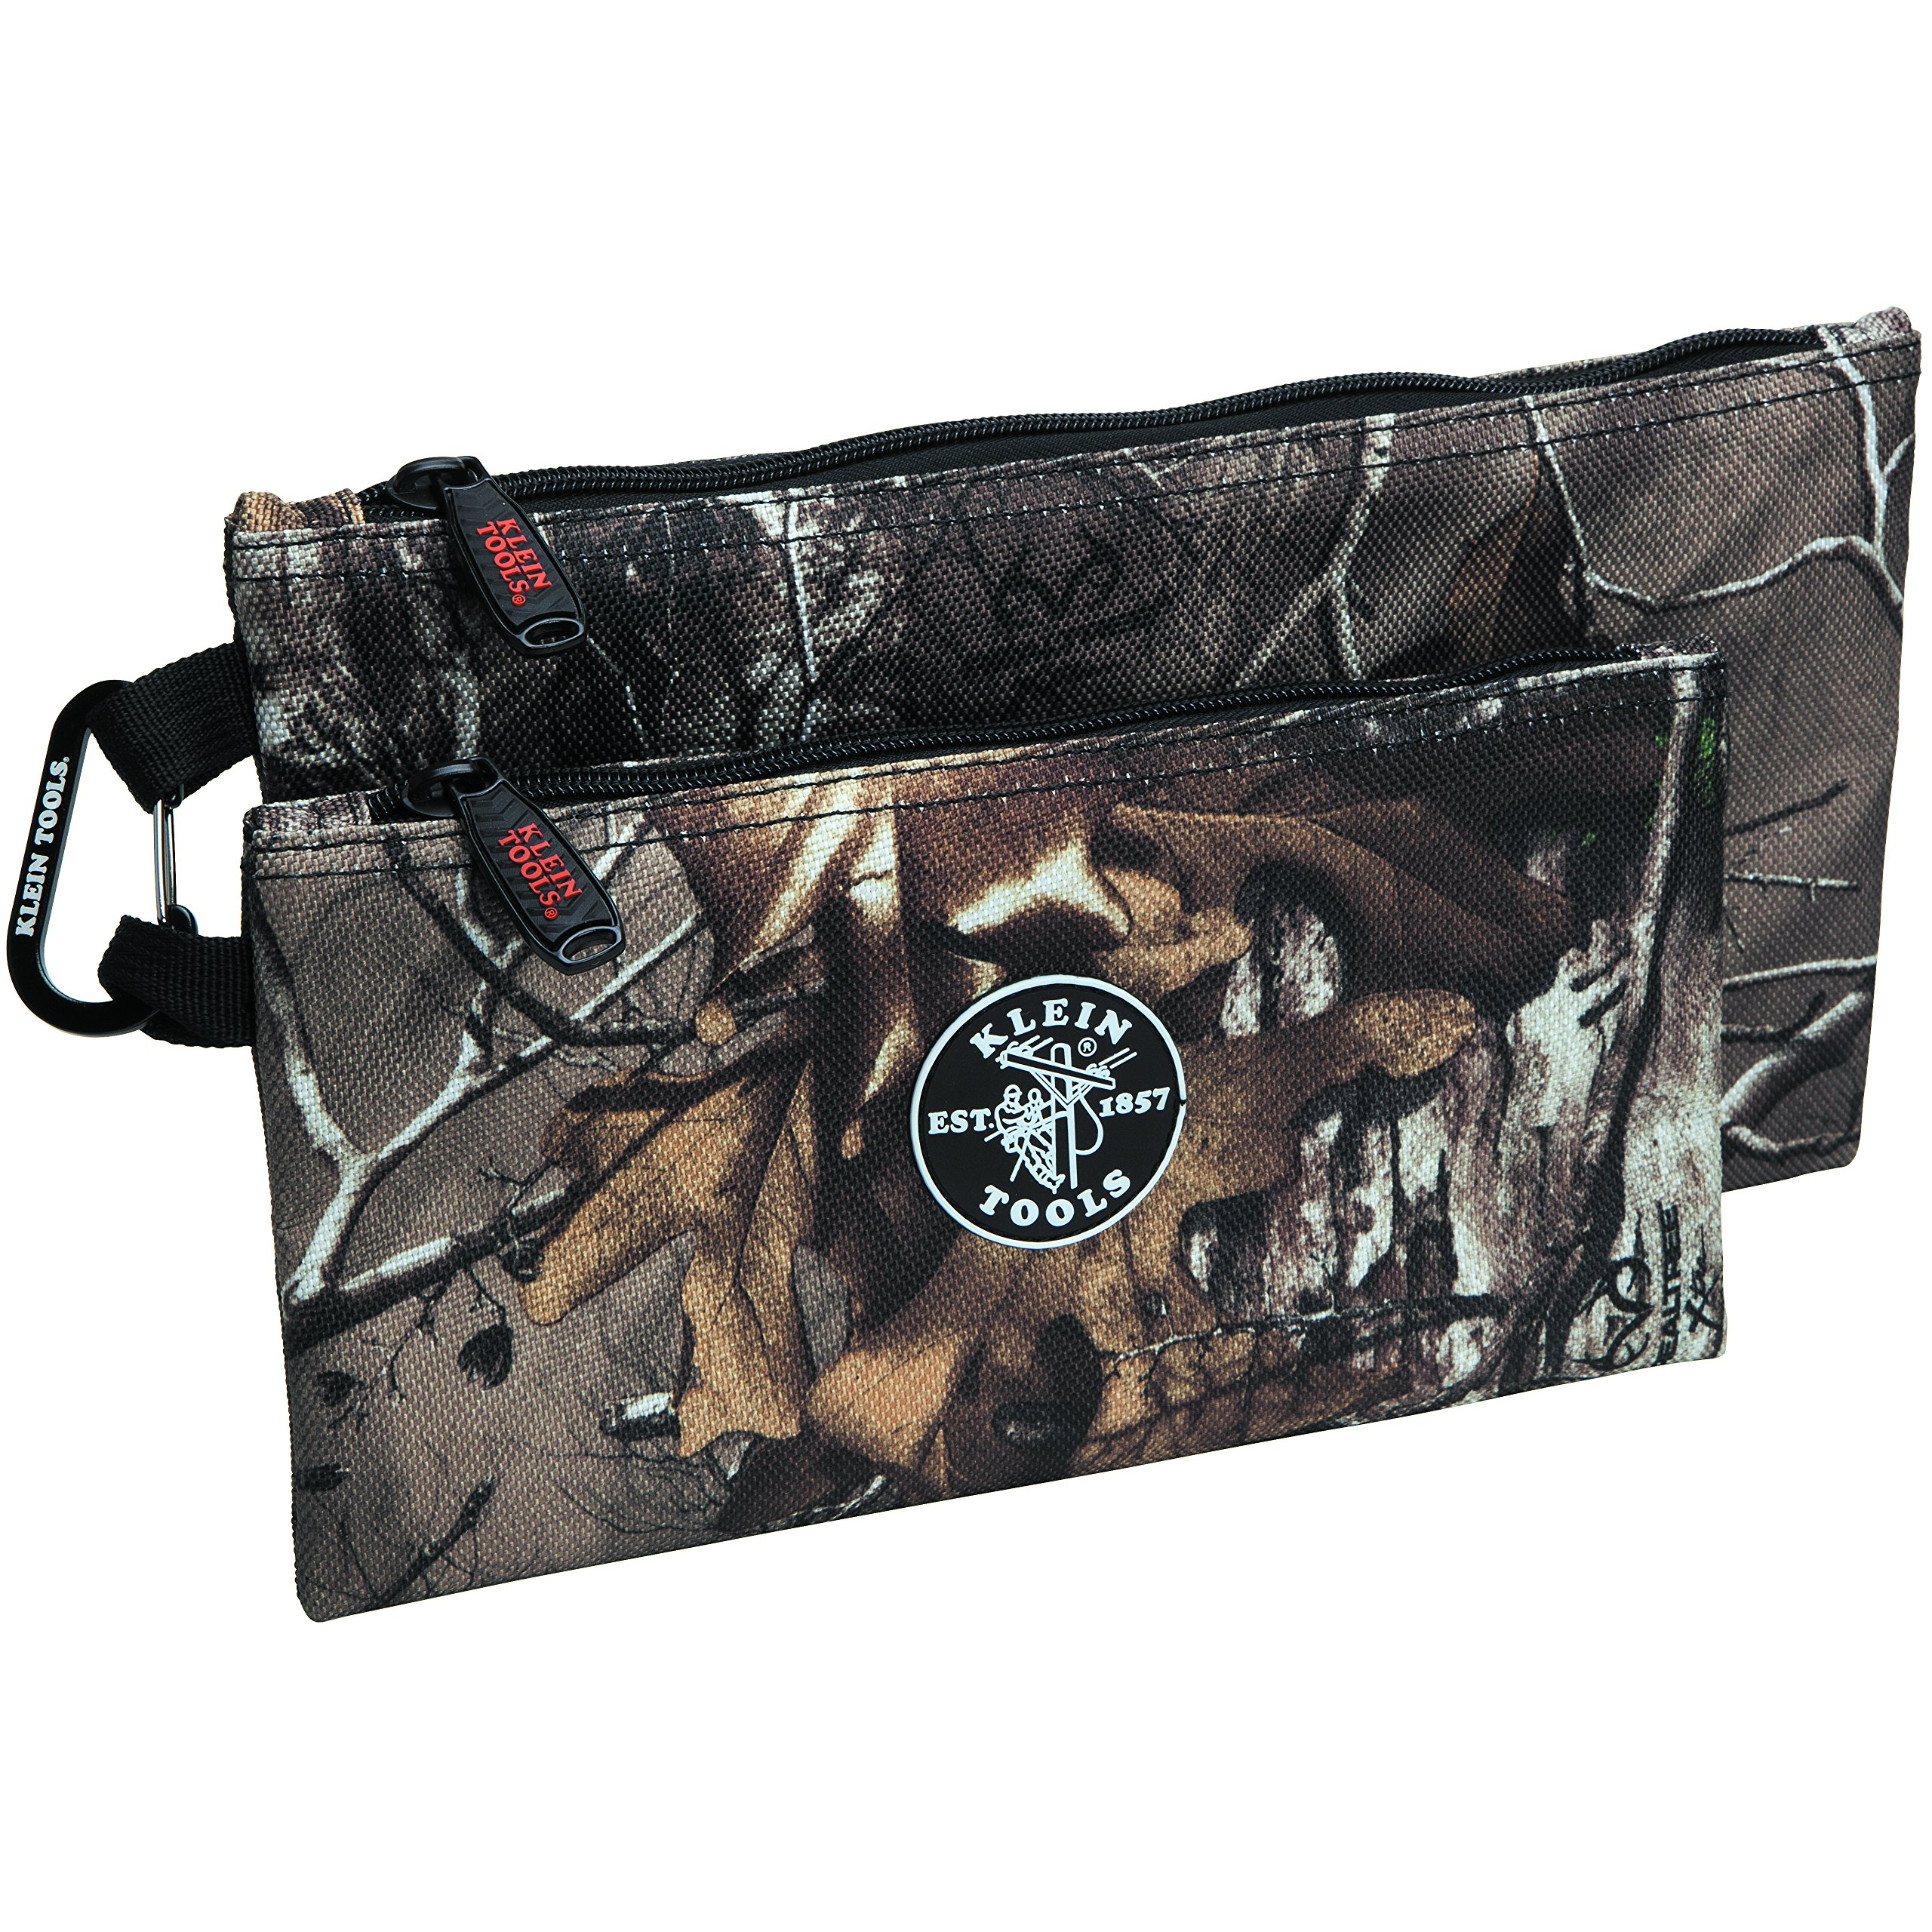 Zipper Bags, Camo Bags are 12.5 and 10-Inch, 1680d Ballistic Weave Camouflage 2-Piece Klein Tools 55560 by Klein Tools